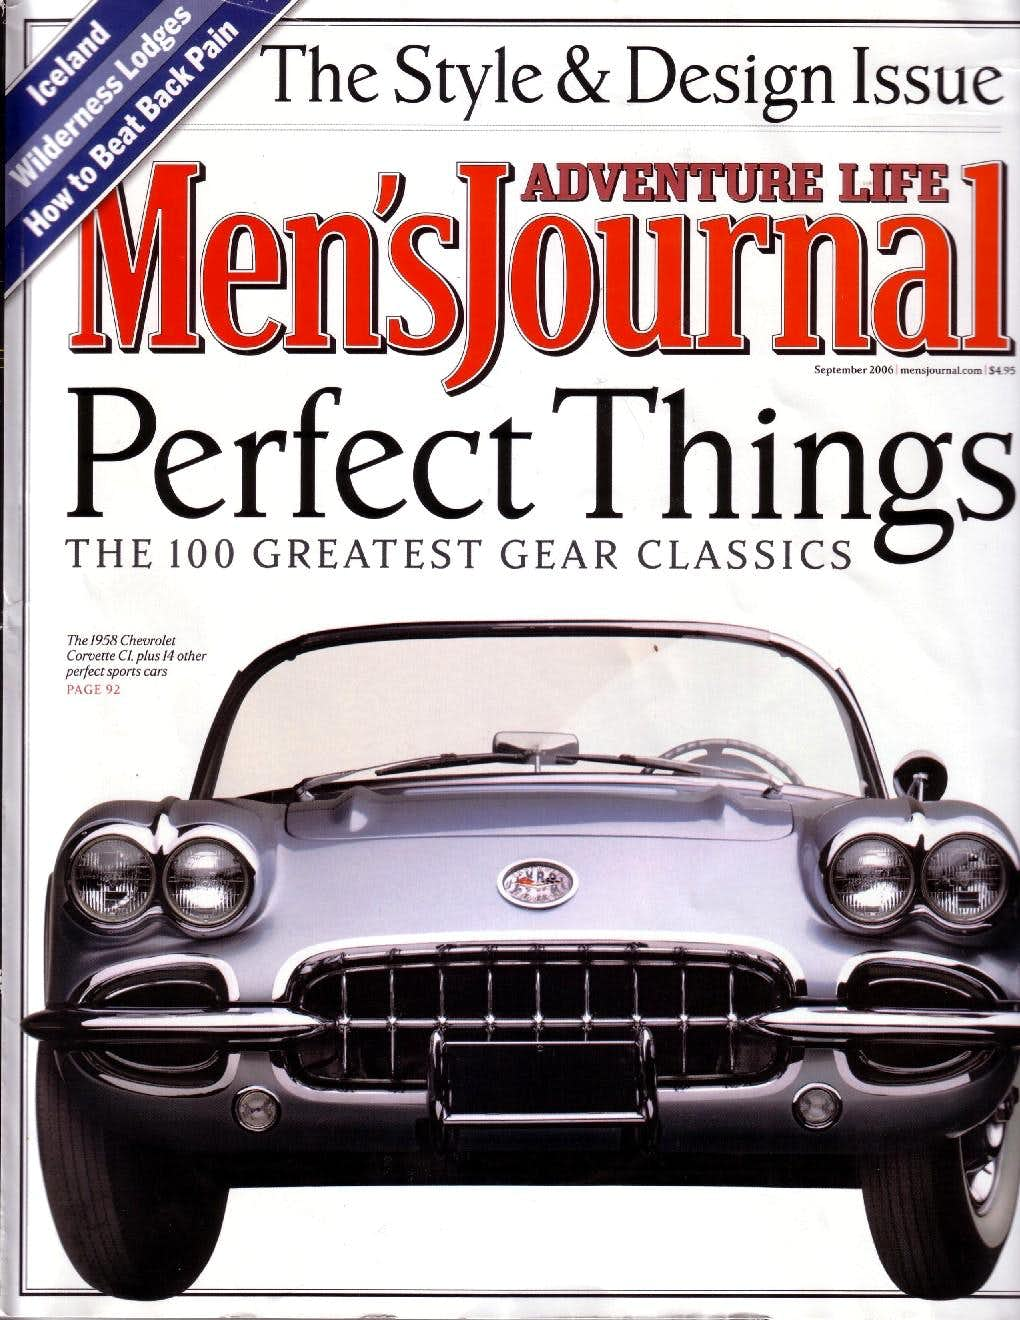 NEWS: SP in Men\'s Journal